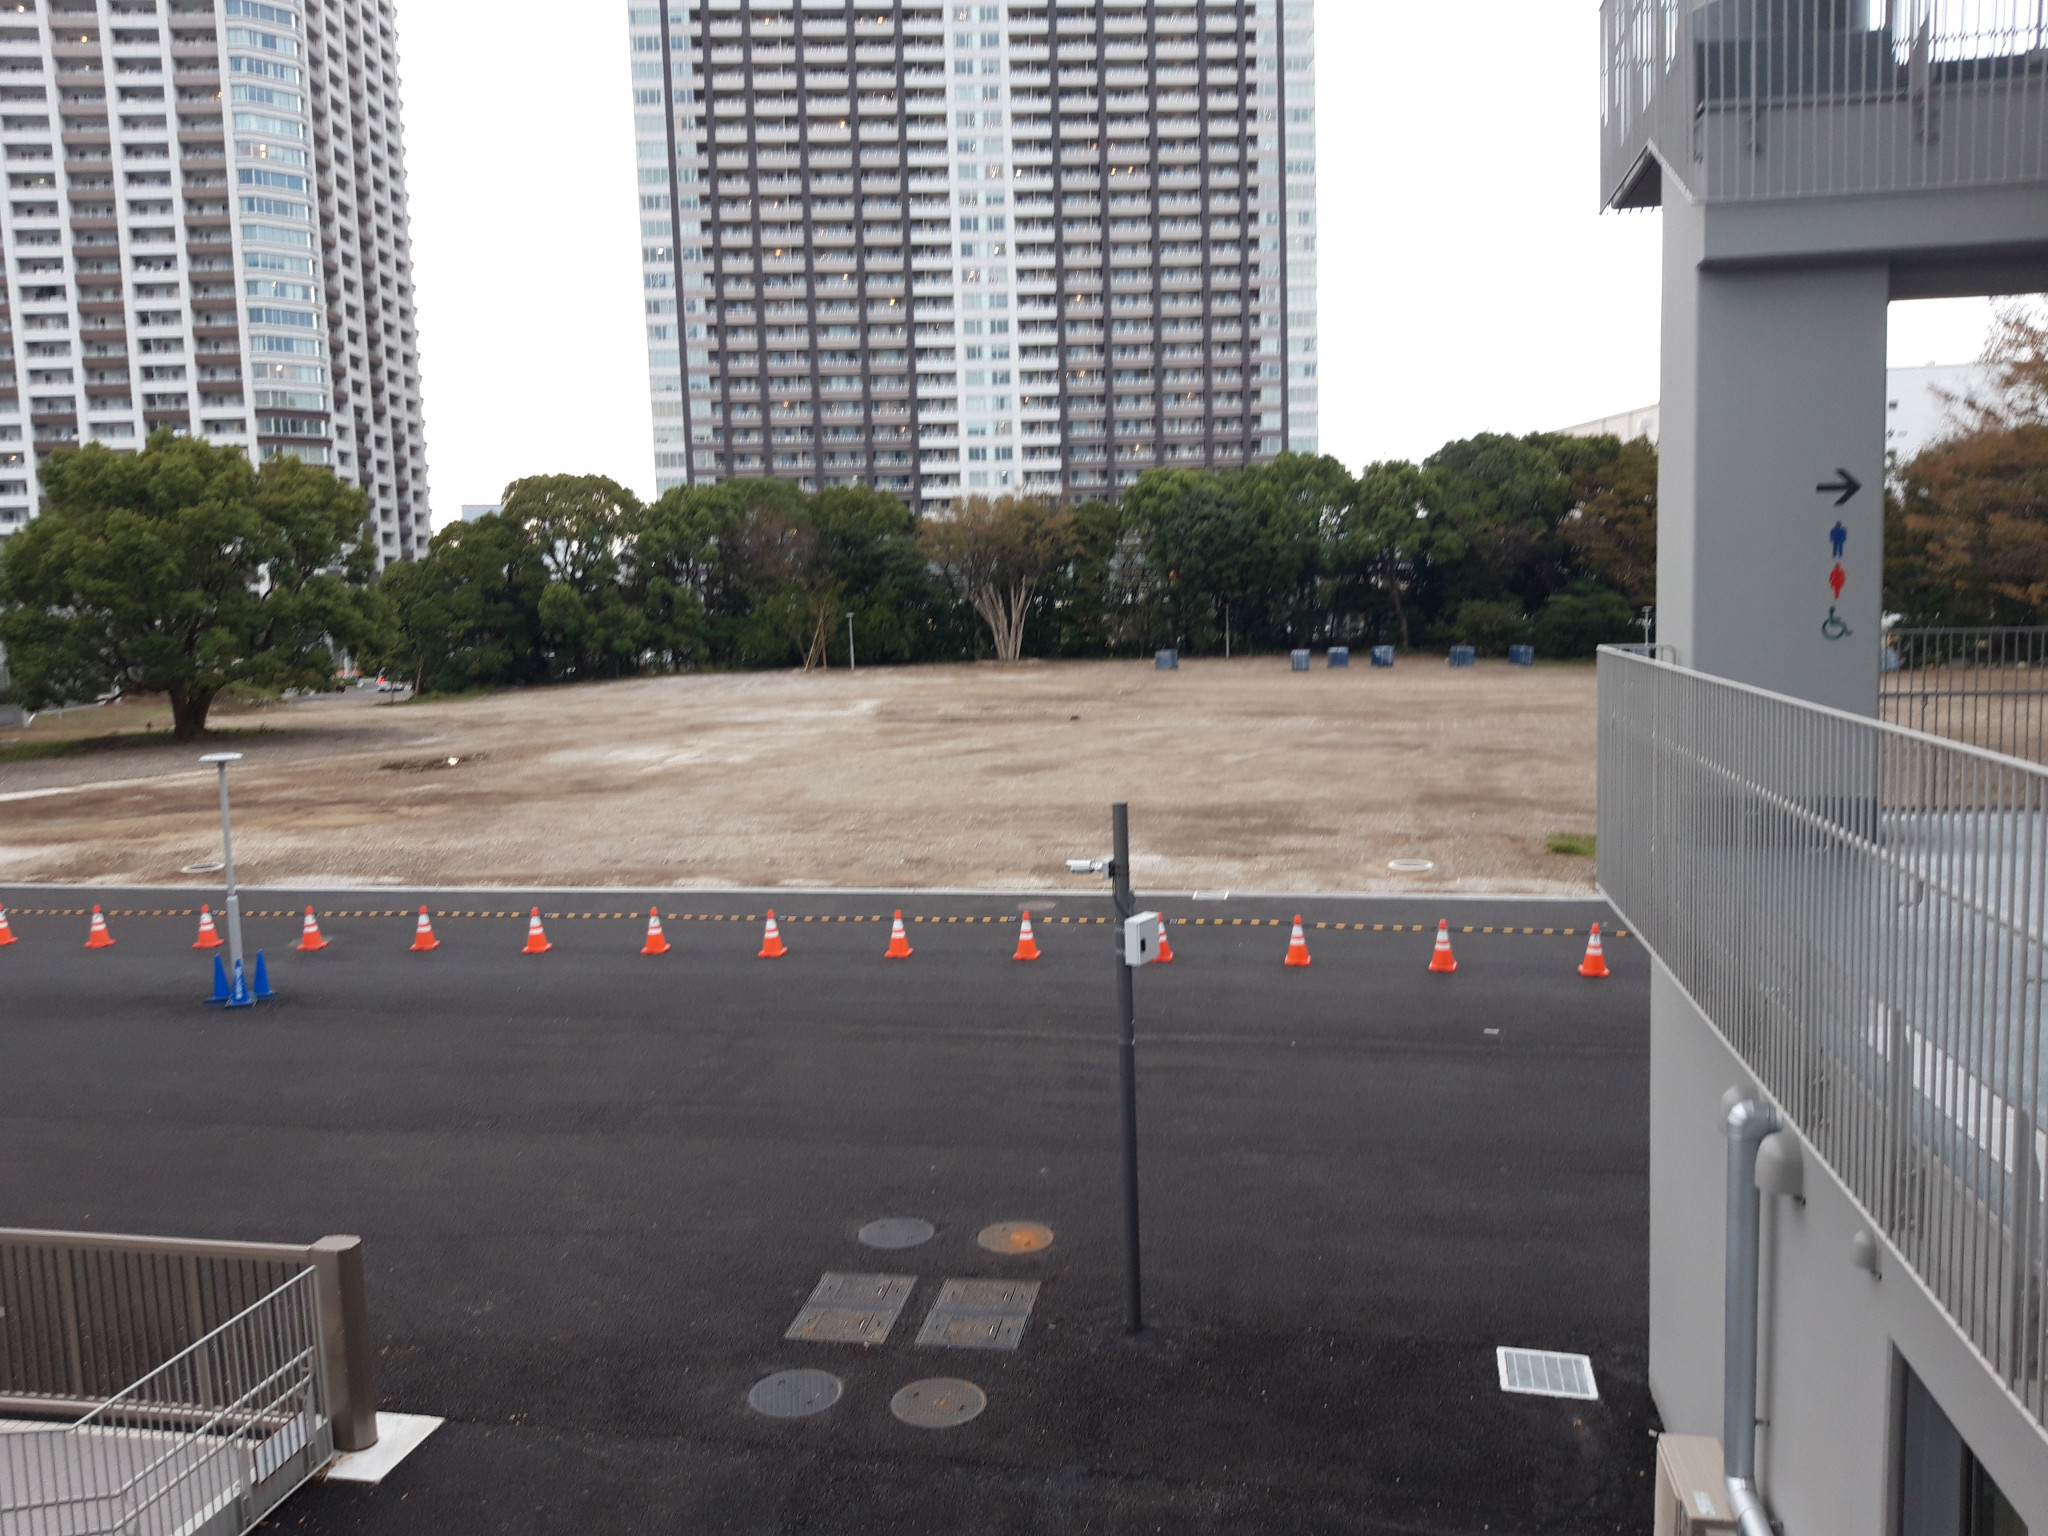 Tennis courts to be constructed but Tokyo 2020 remain confident venues will be ready